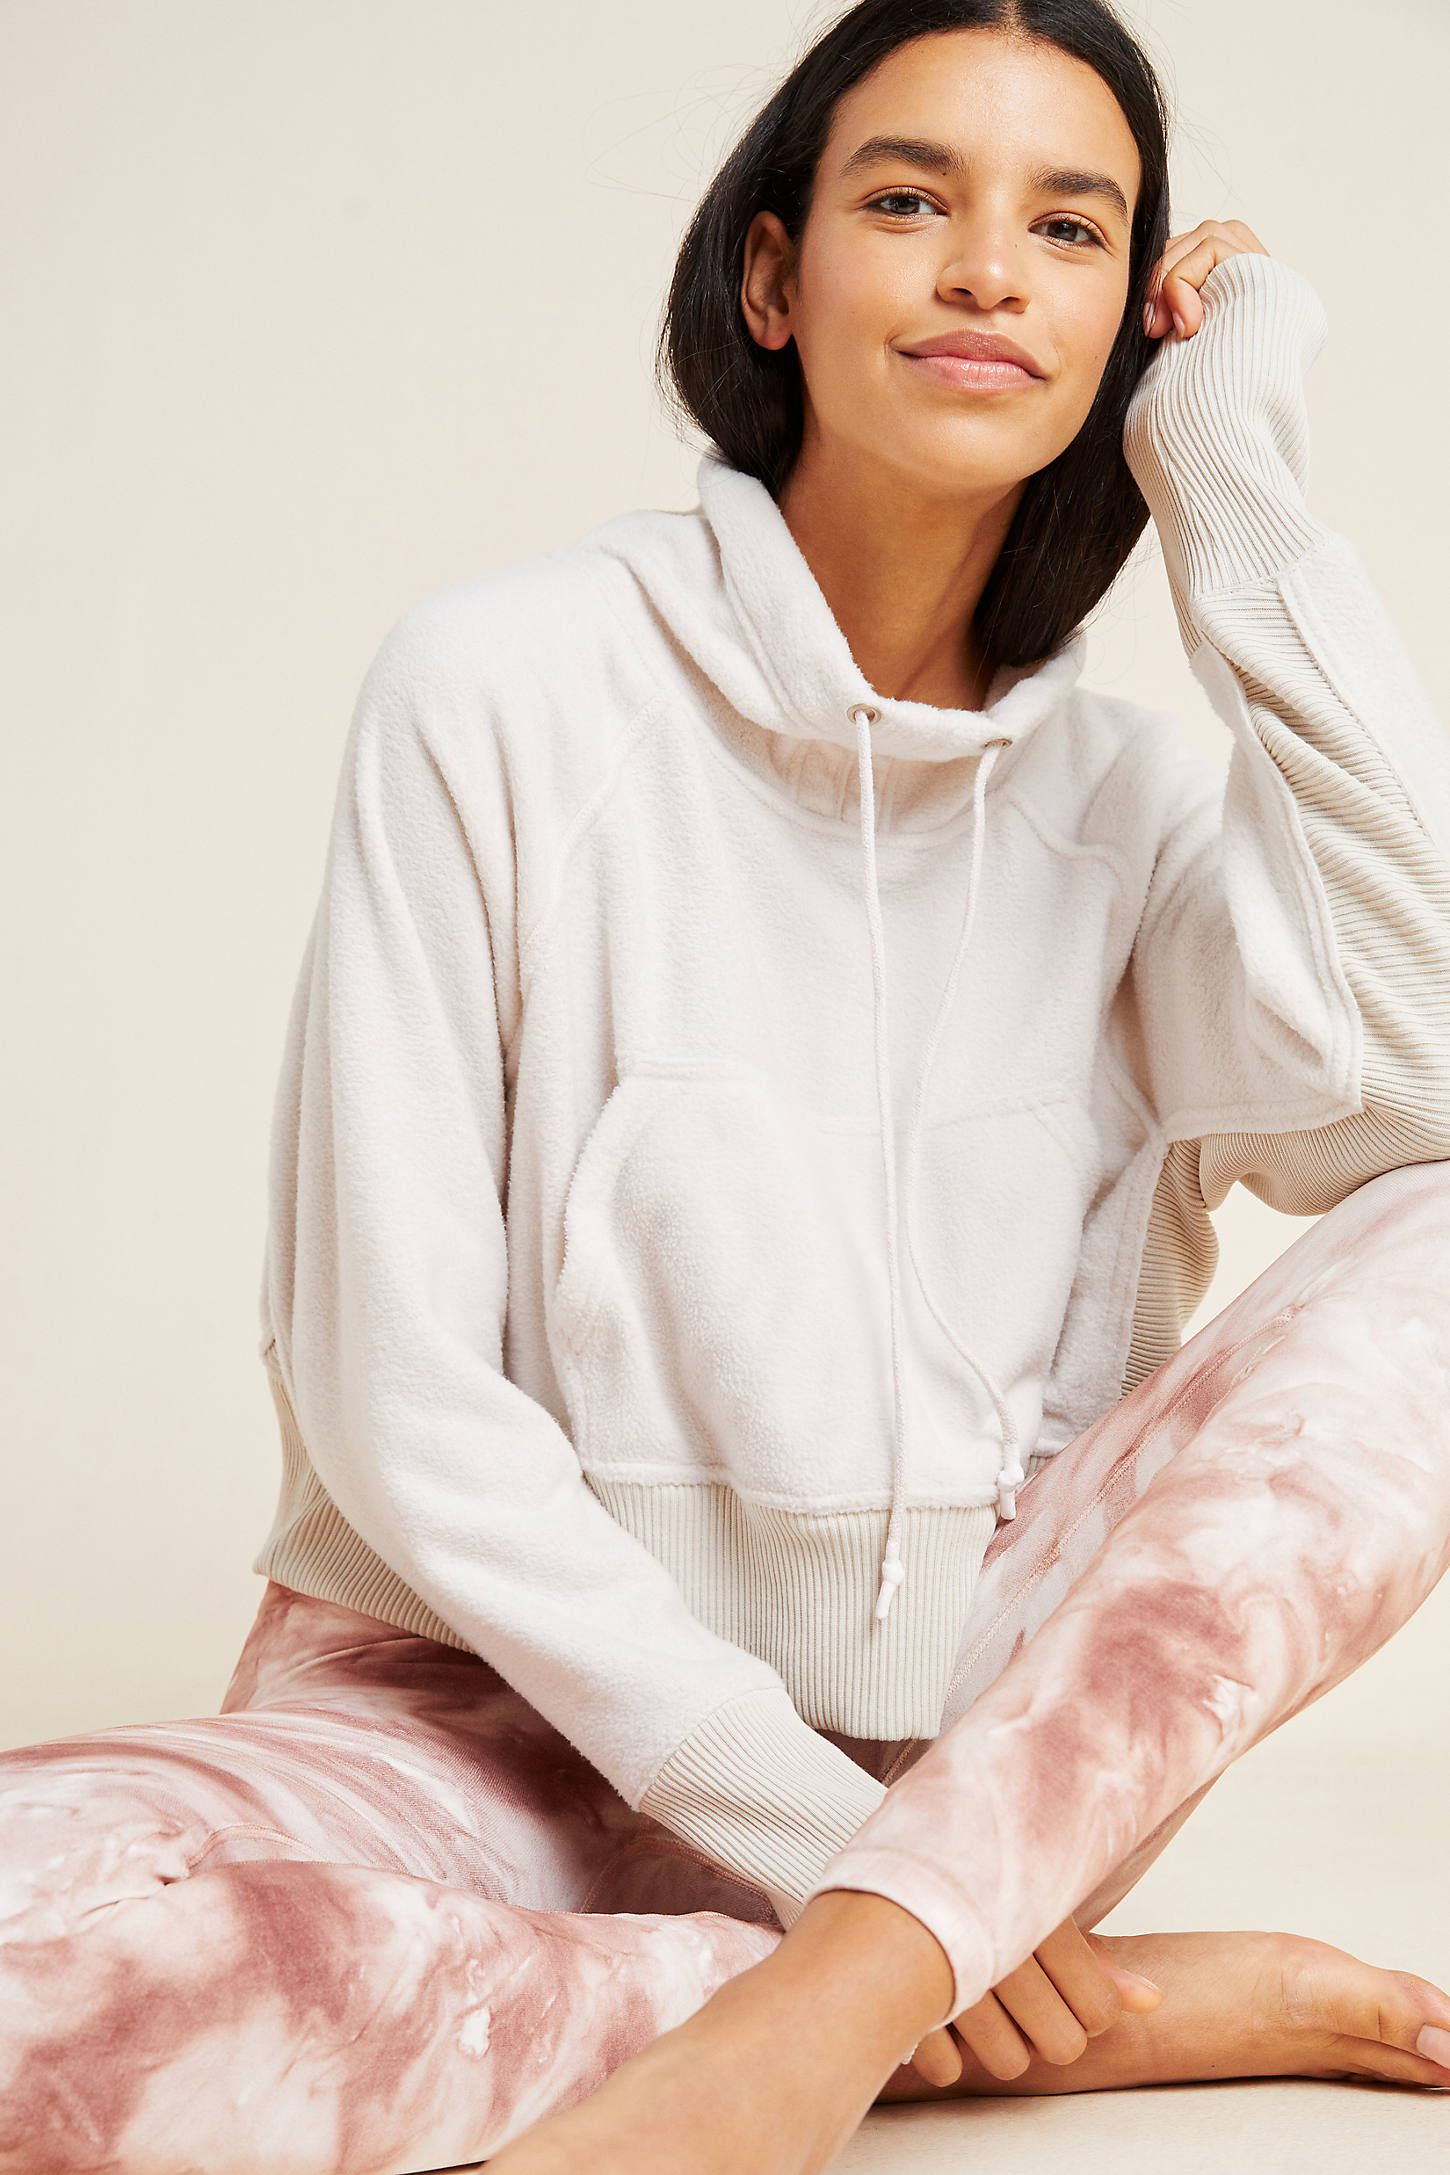 Free People Movement Westlake Sweatshirt by in Beige Size: S, Womens Activewear at Anthropologie